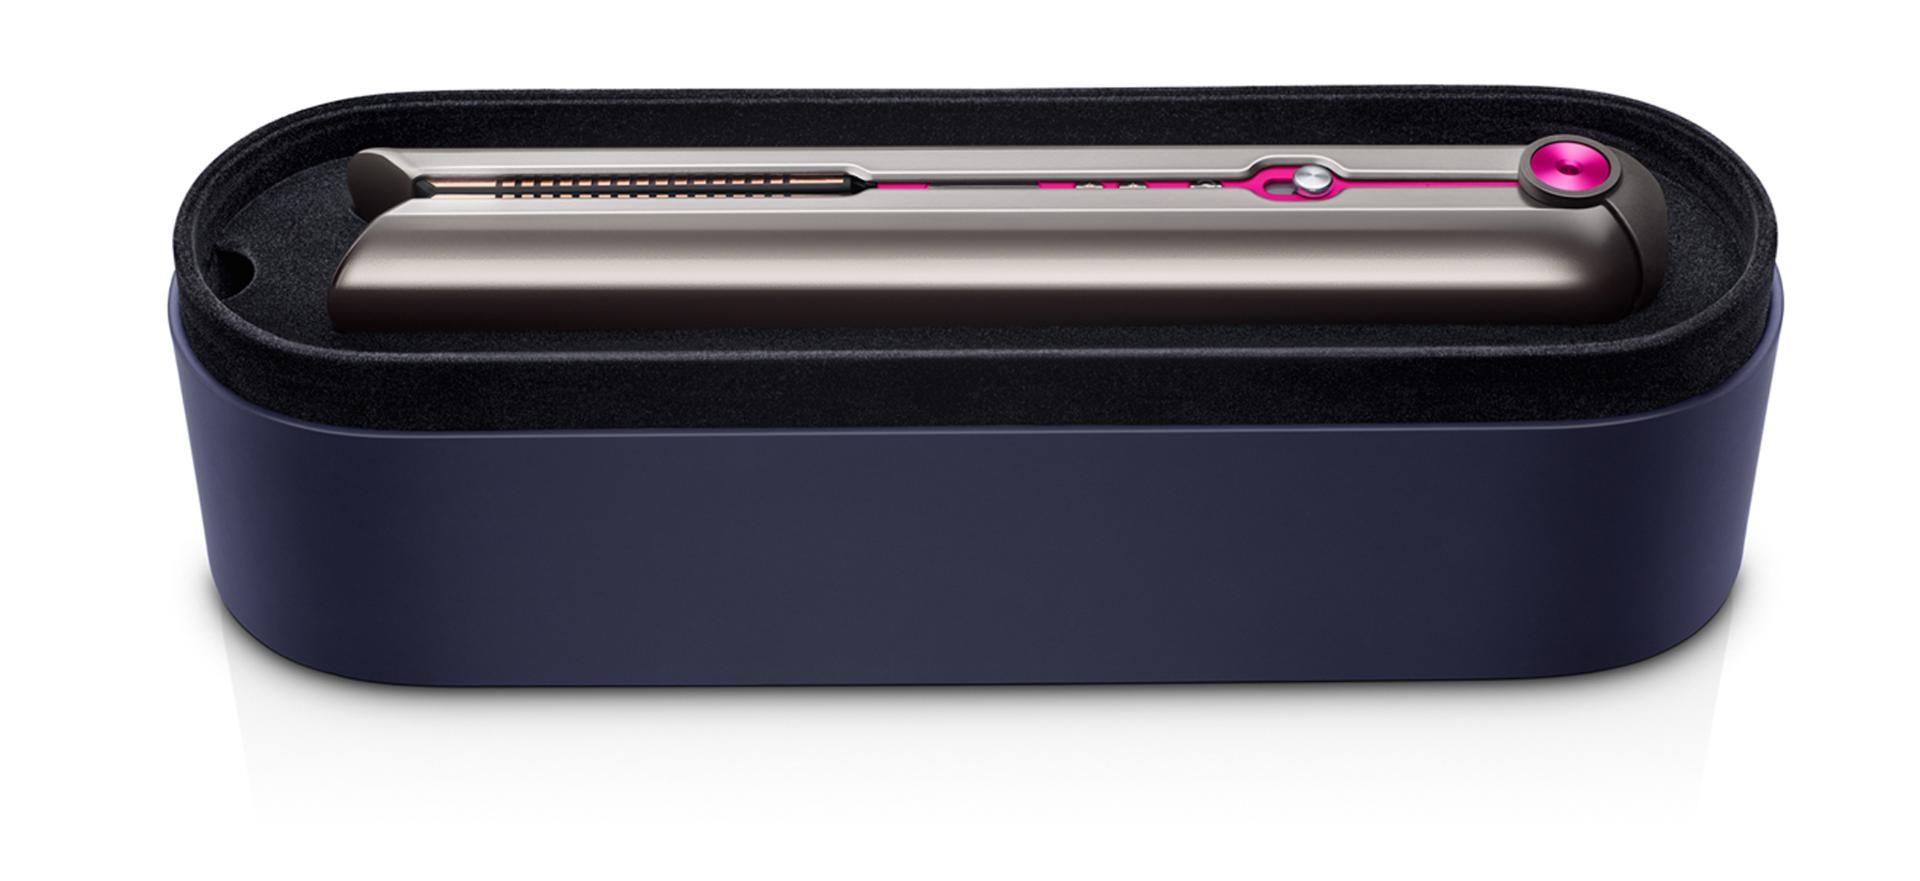 An open Dyson-designed presentation case containing the Dyson Corrale straightener